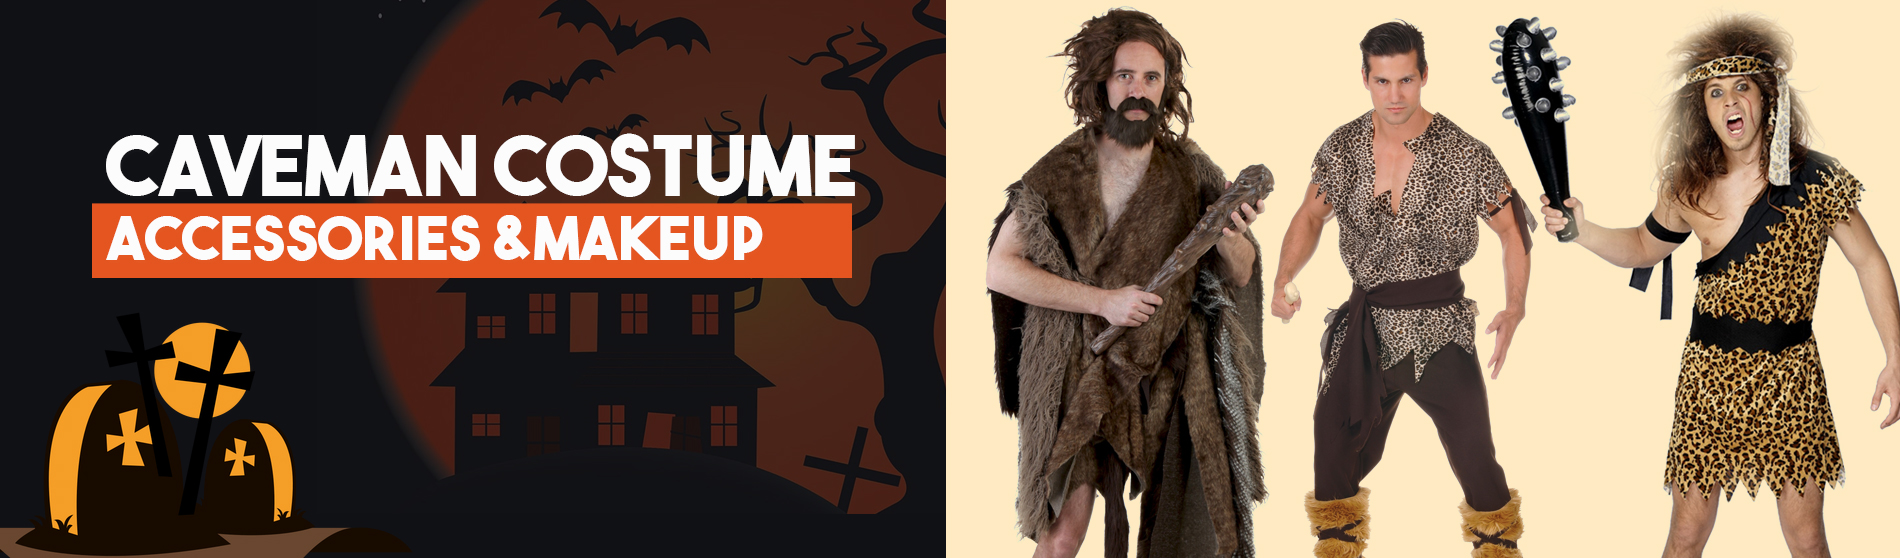 Caveman-Costume-Accessories-and-Makeup